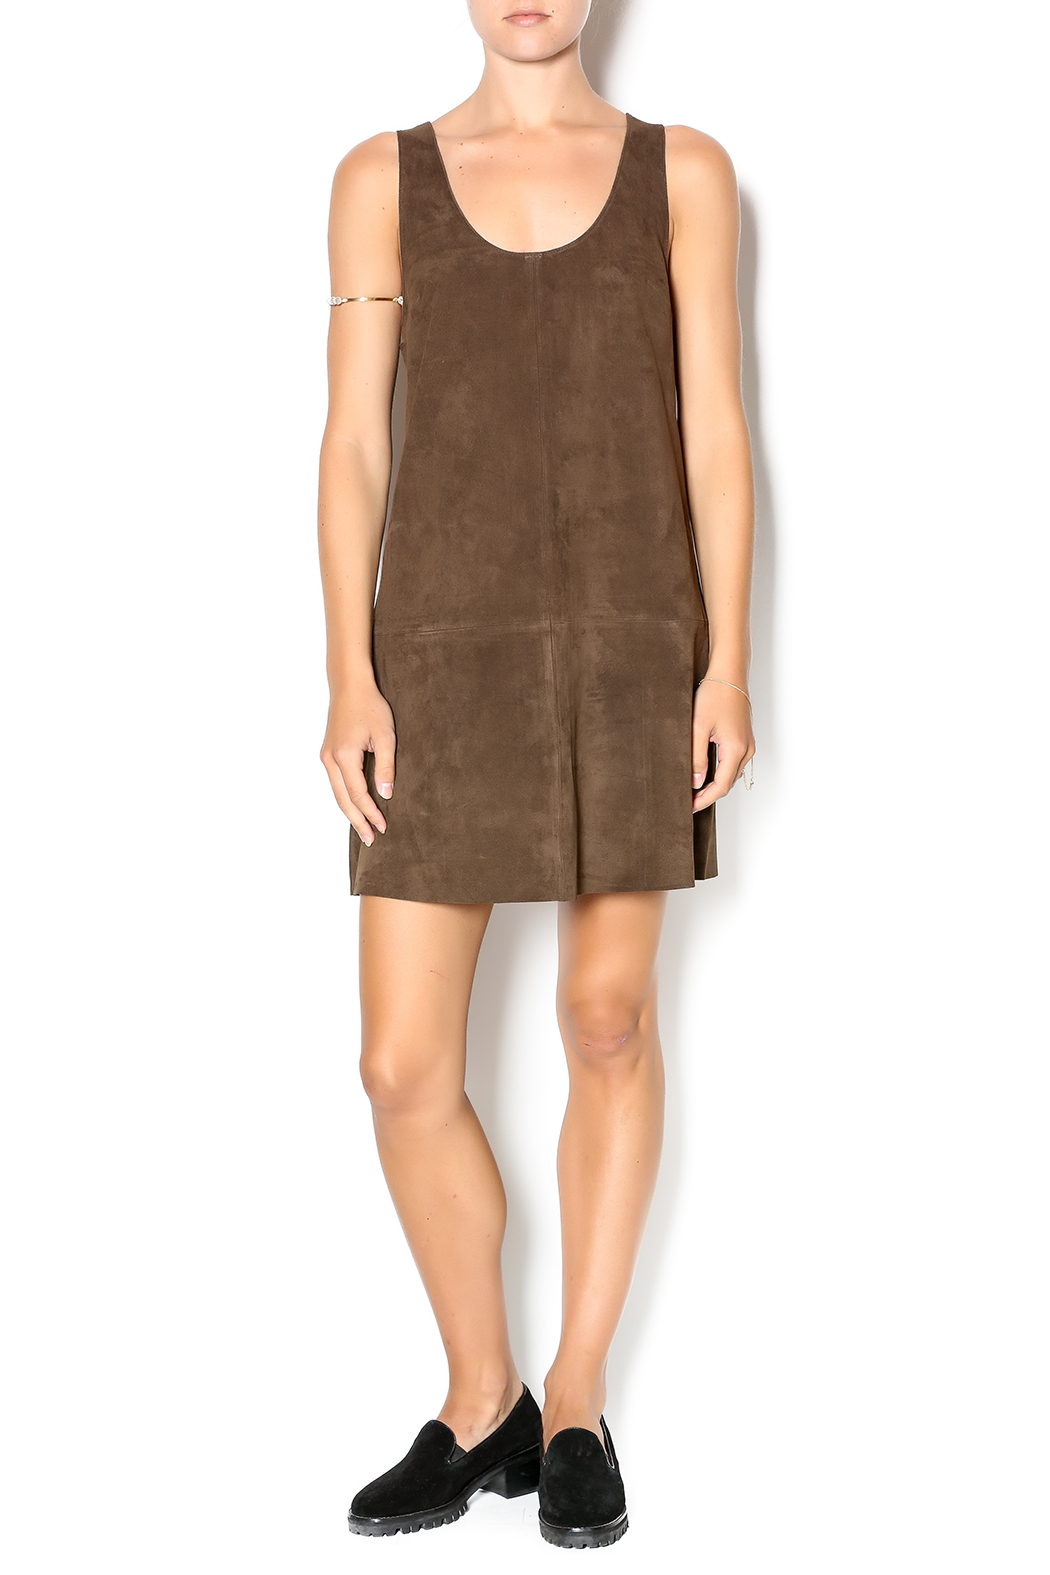 ab63ab7b6a BB Dakota Katniss Suede Dress from New Mexico by Substance — Shoptiques